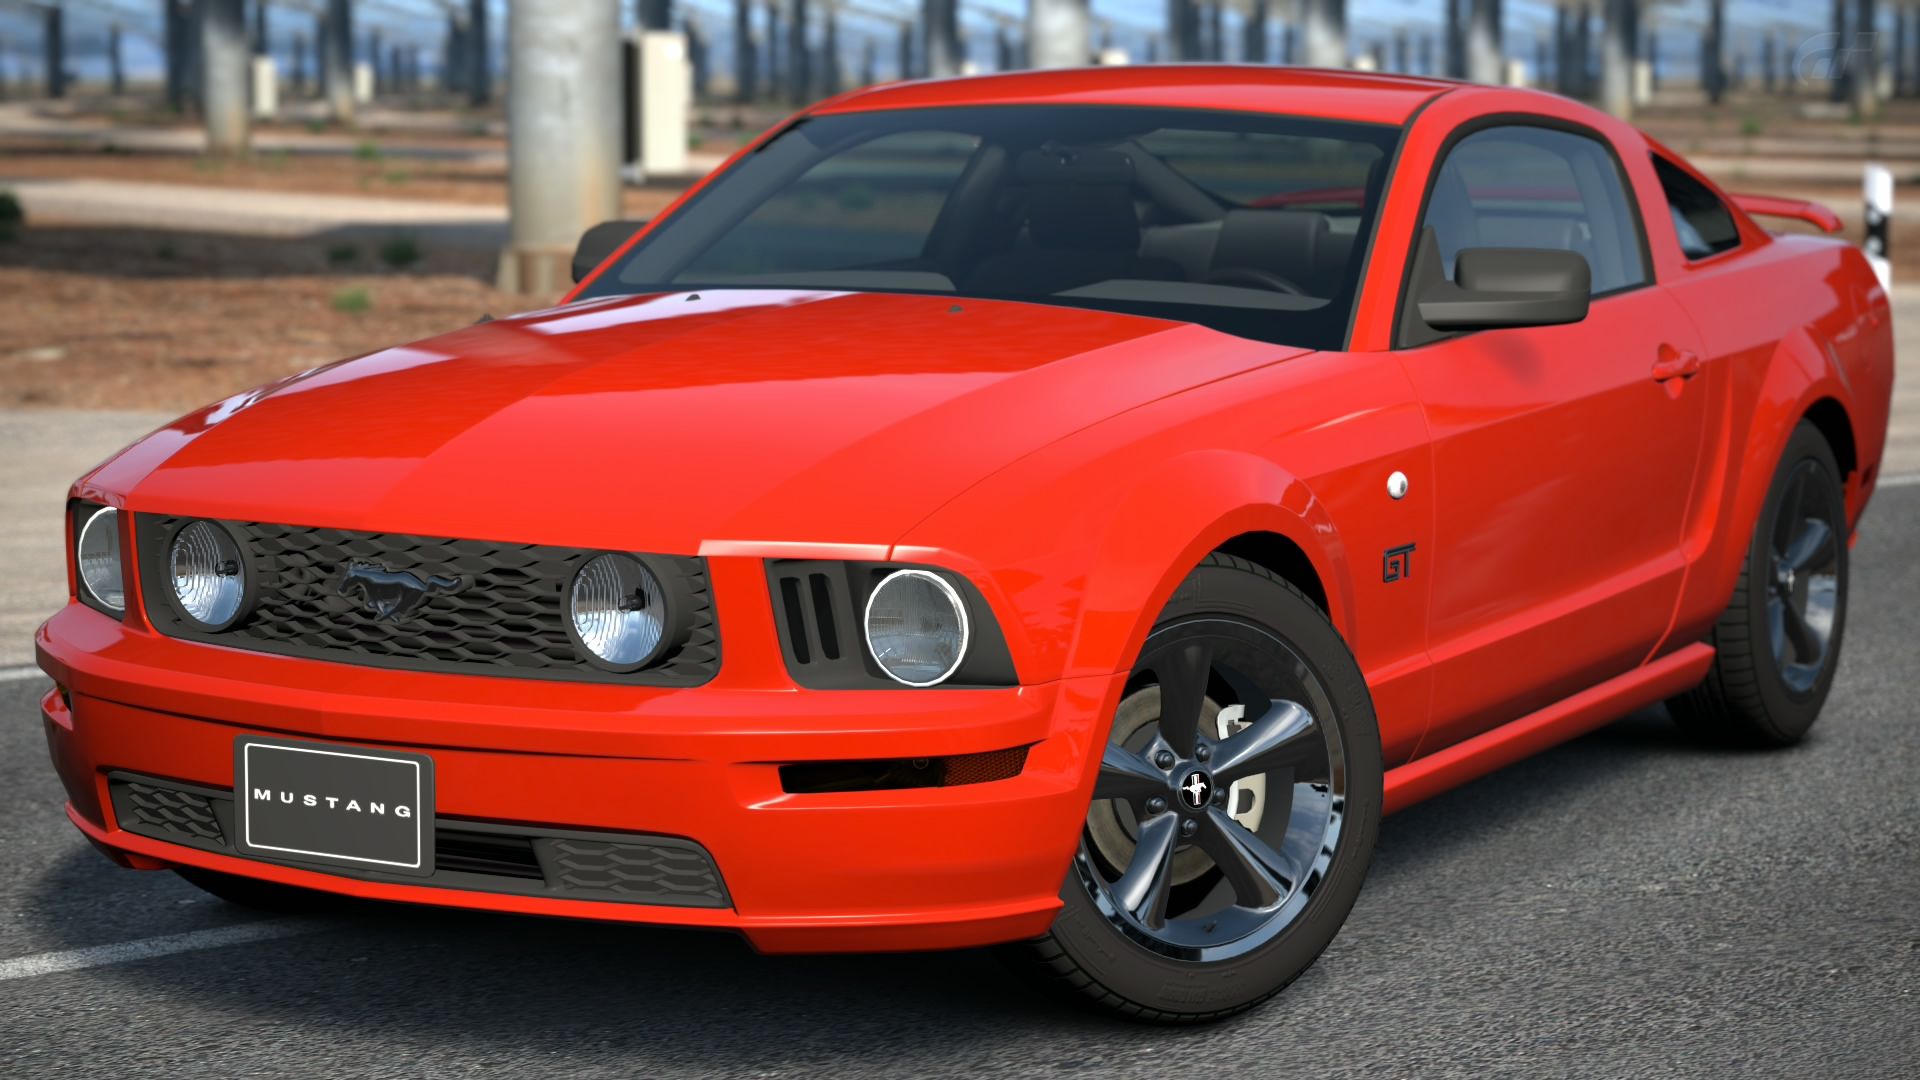 Ford Mustang V8 GT Coupe Premium '07